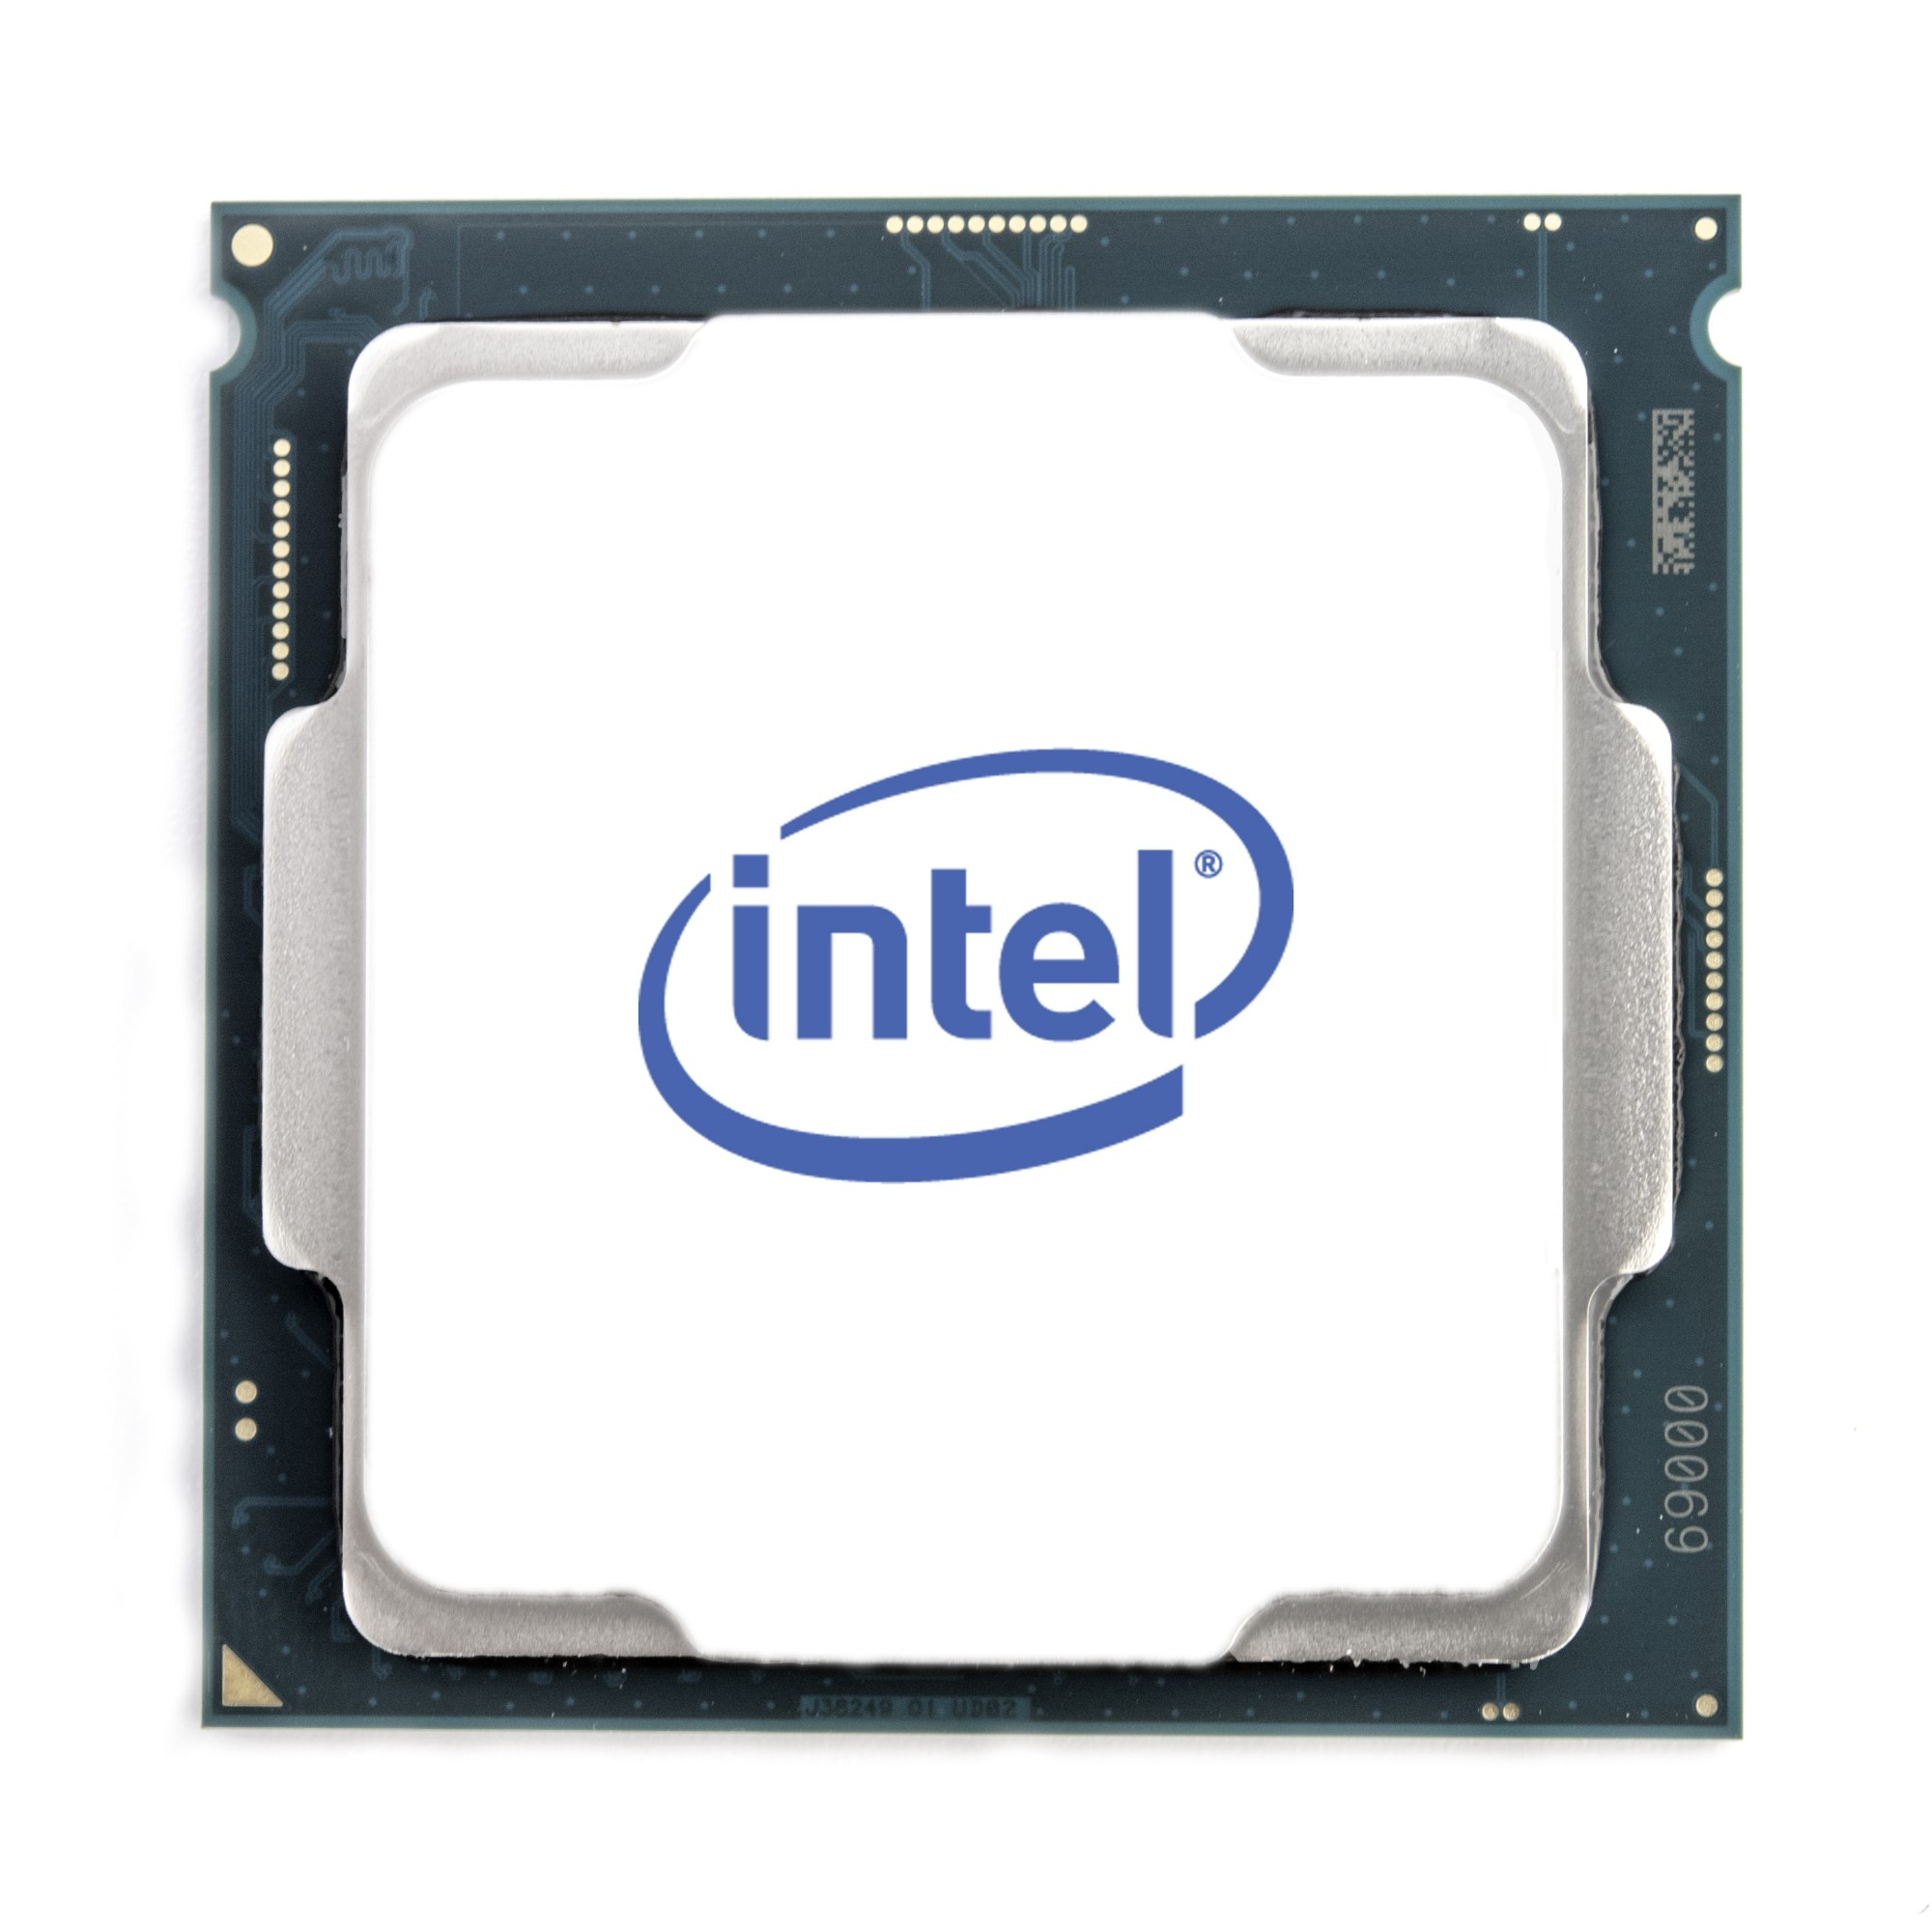 INTEL CORE I3-8100 PROCESSOR (6M CACHE, 3.60 GHZ) 3.6GHZ 6MB SMART CACHE BOX